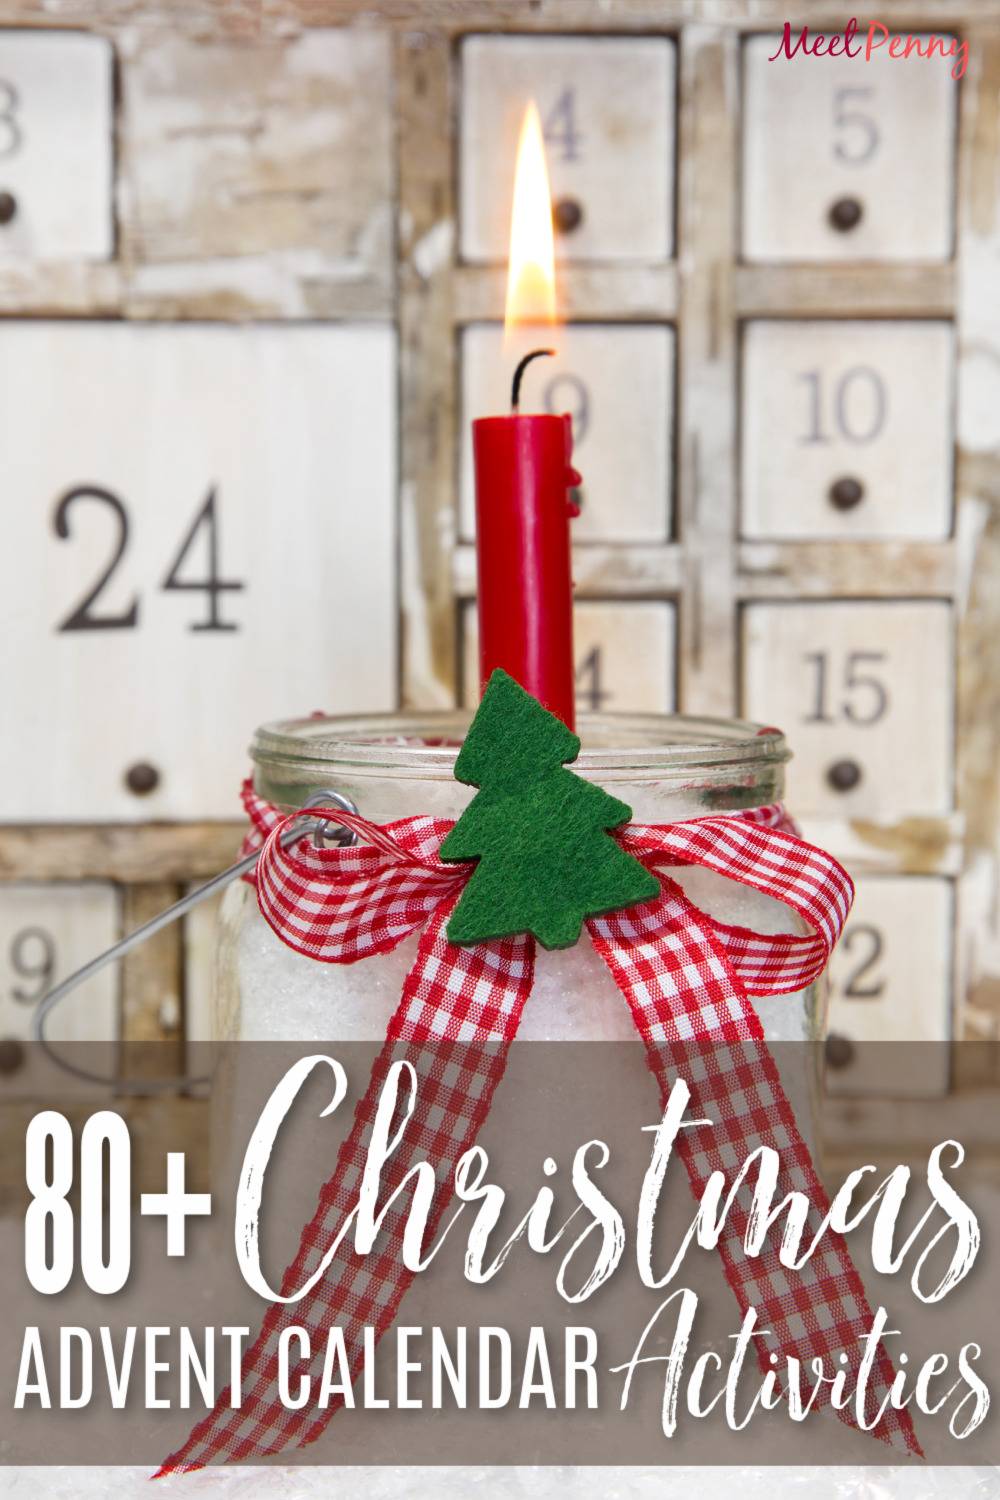 Tons of Advent calendar activities to help plan your  Christmas countdown.